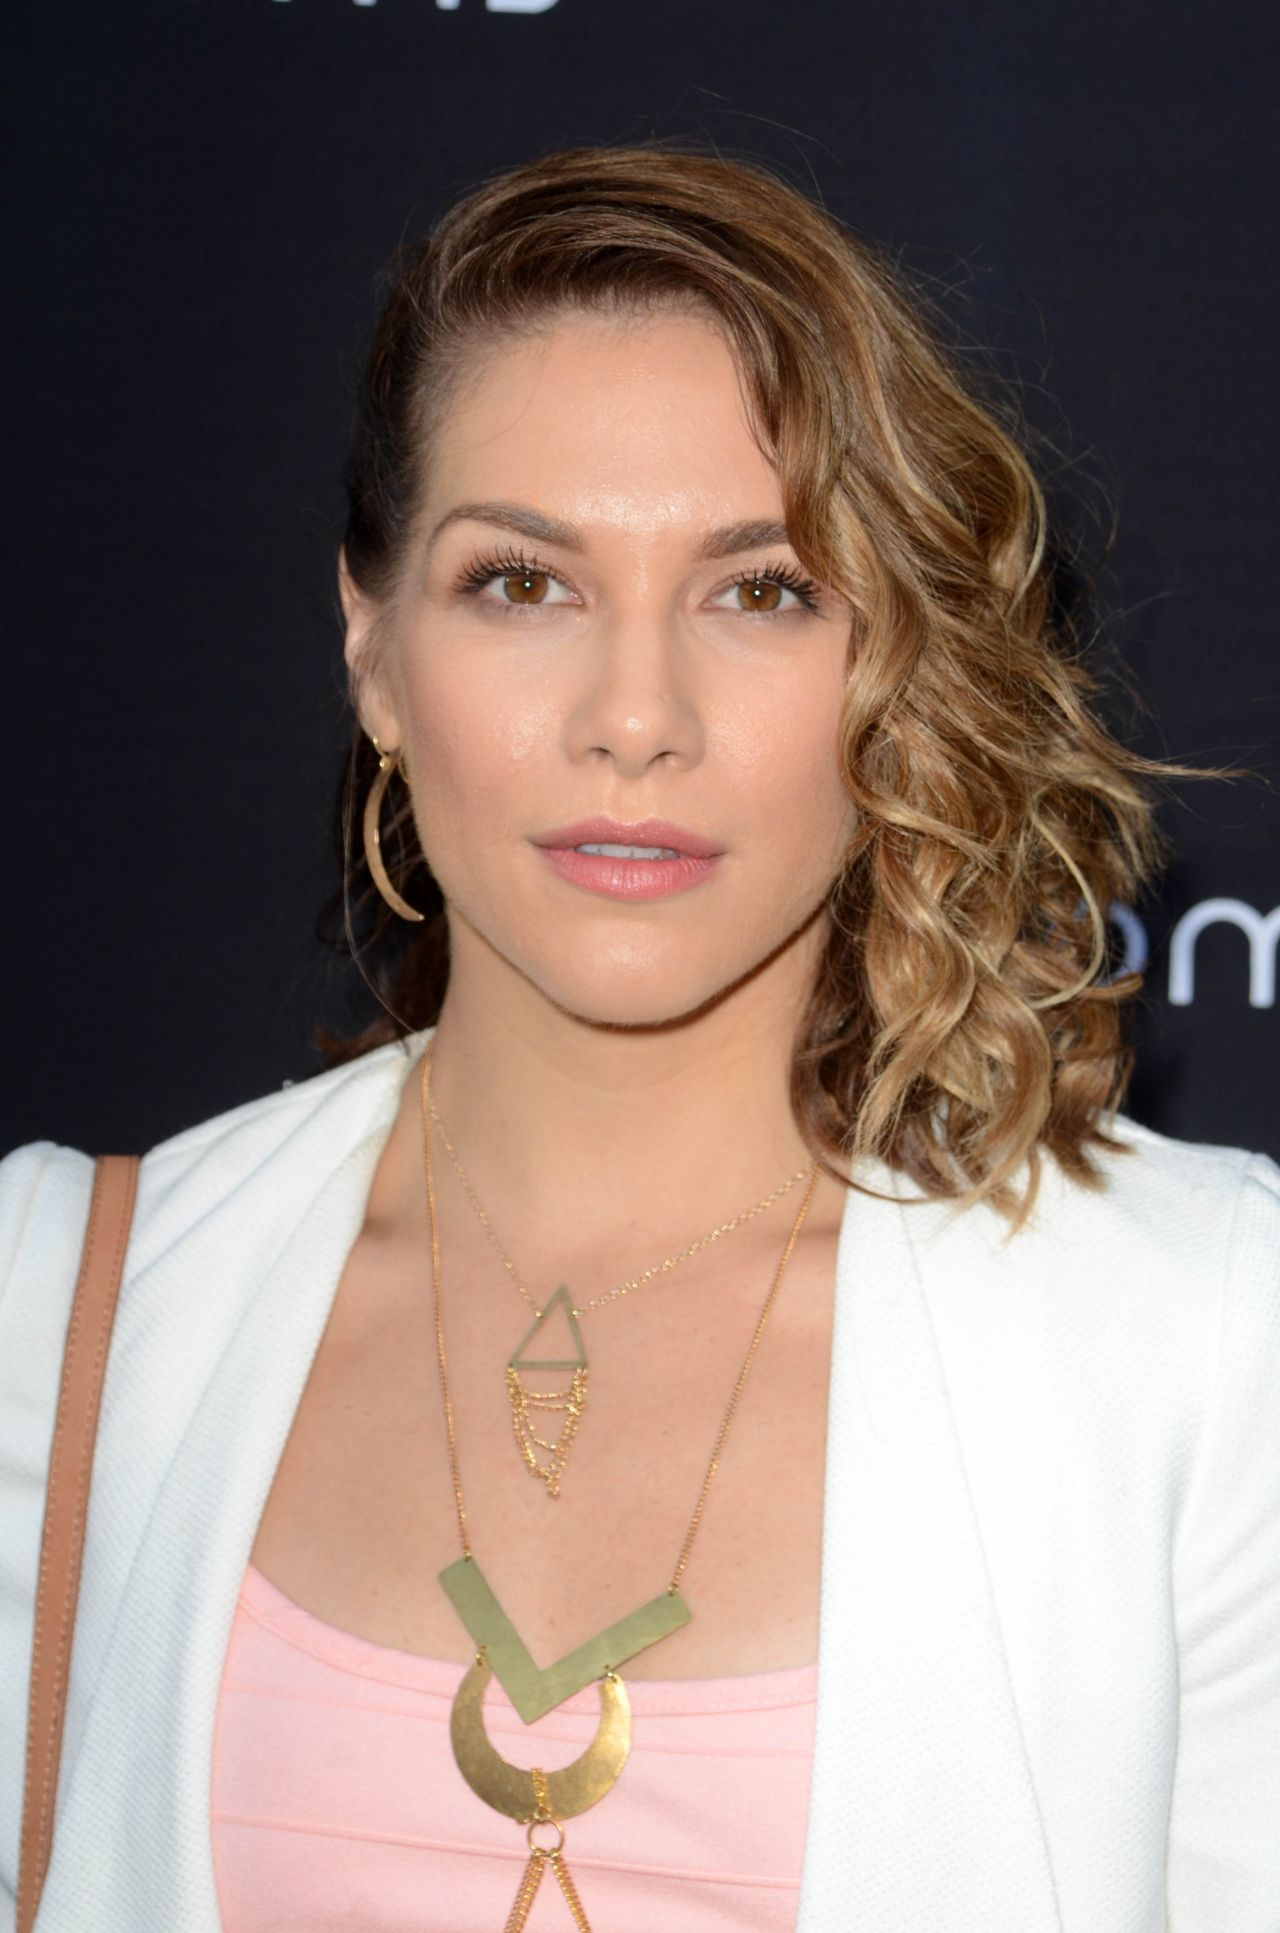 Hilary swank hairstyles for 2017 celebrity hairstyles by - Allison Holker 4moms Car Seat Launch Event Los Angeles 8